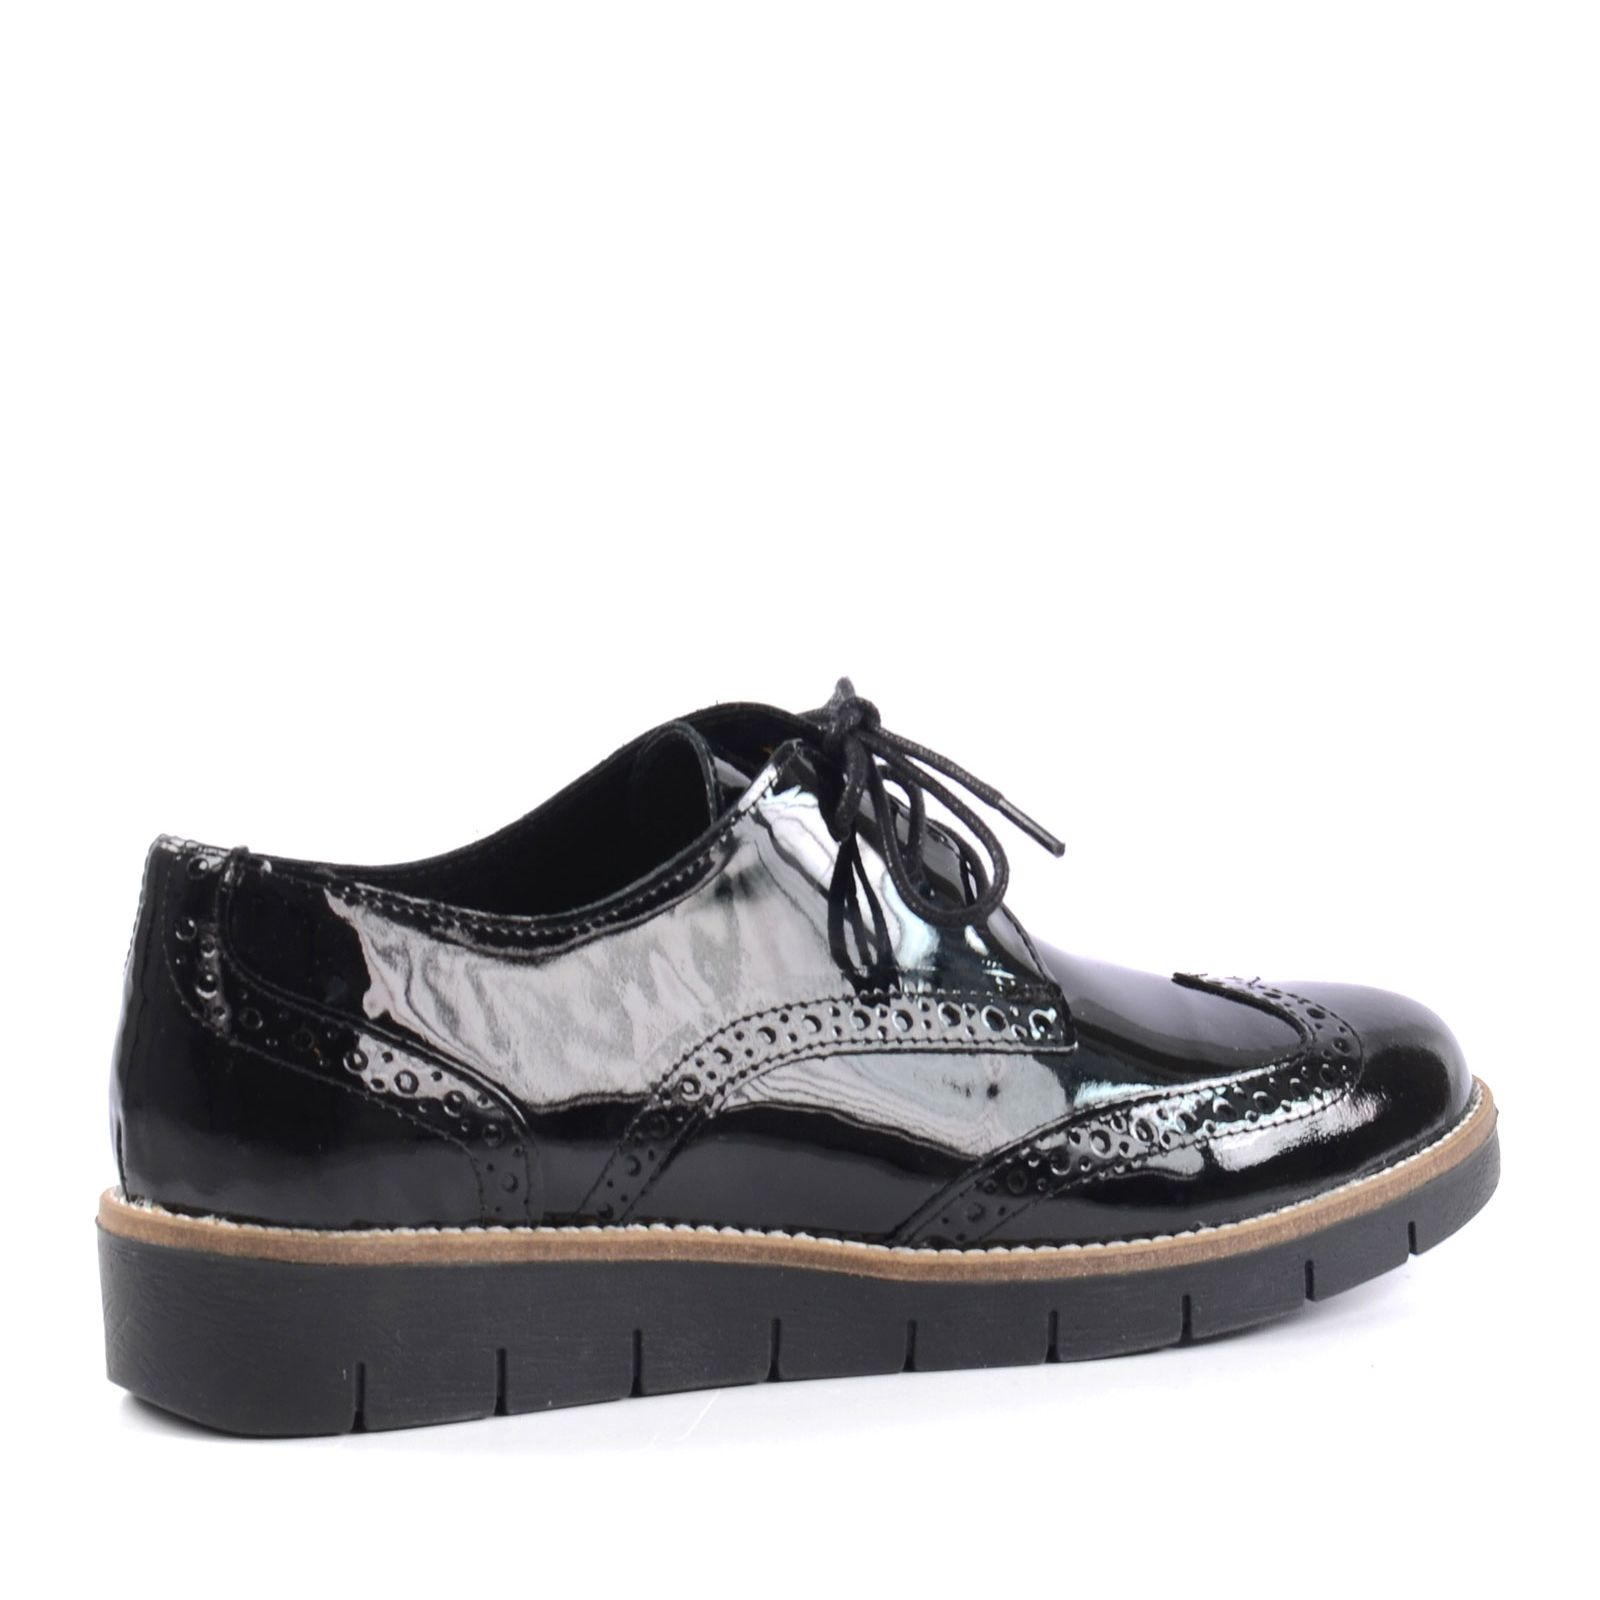 chaussures plateau brogue noir femmes. Black Bedroom Furniture Sets. Home Design Ideas